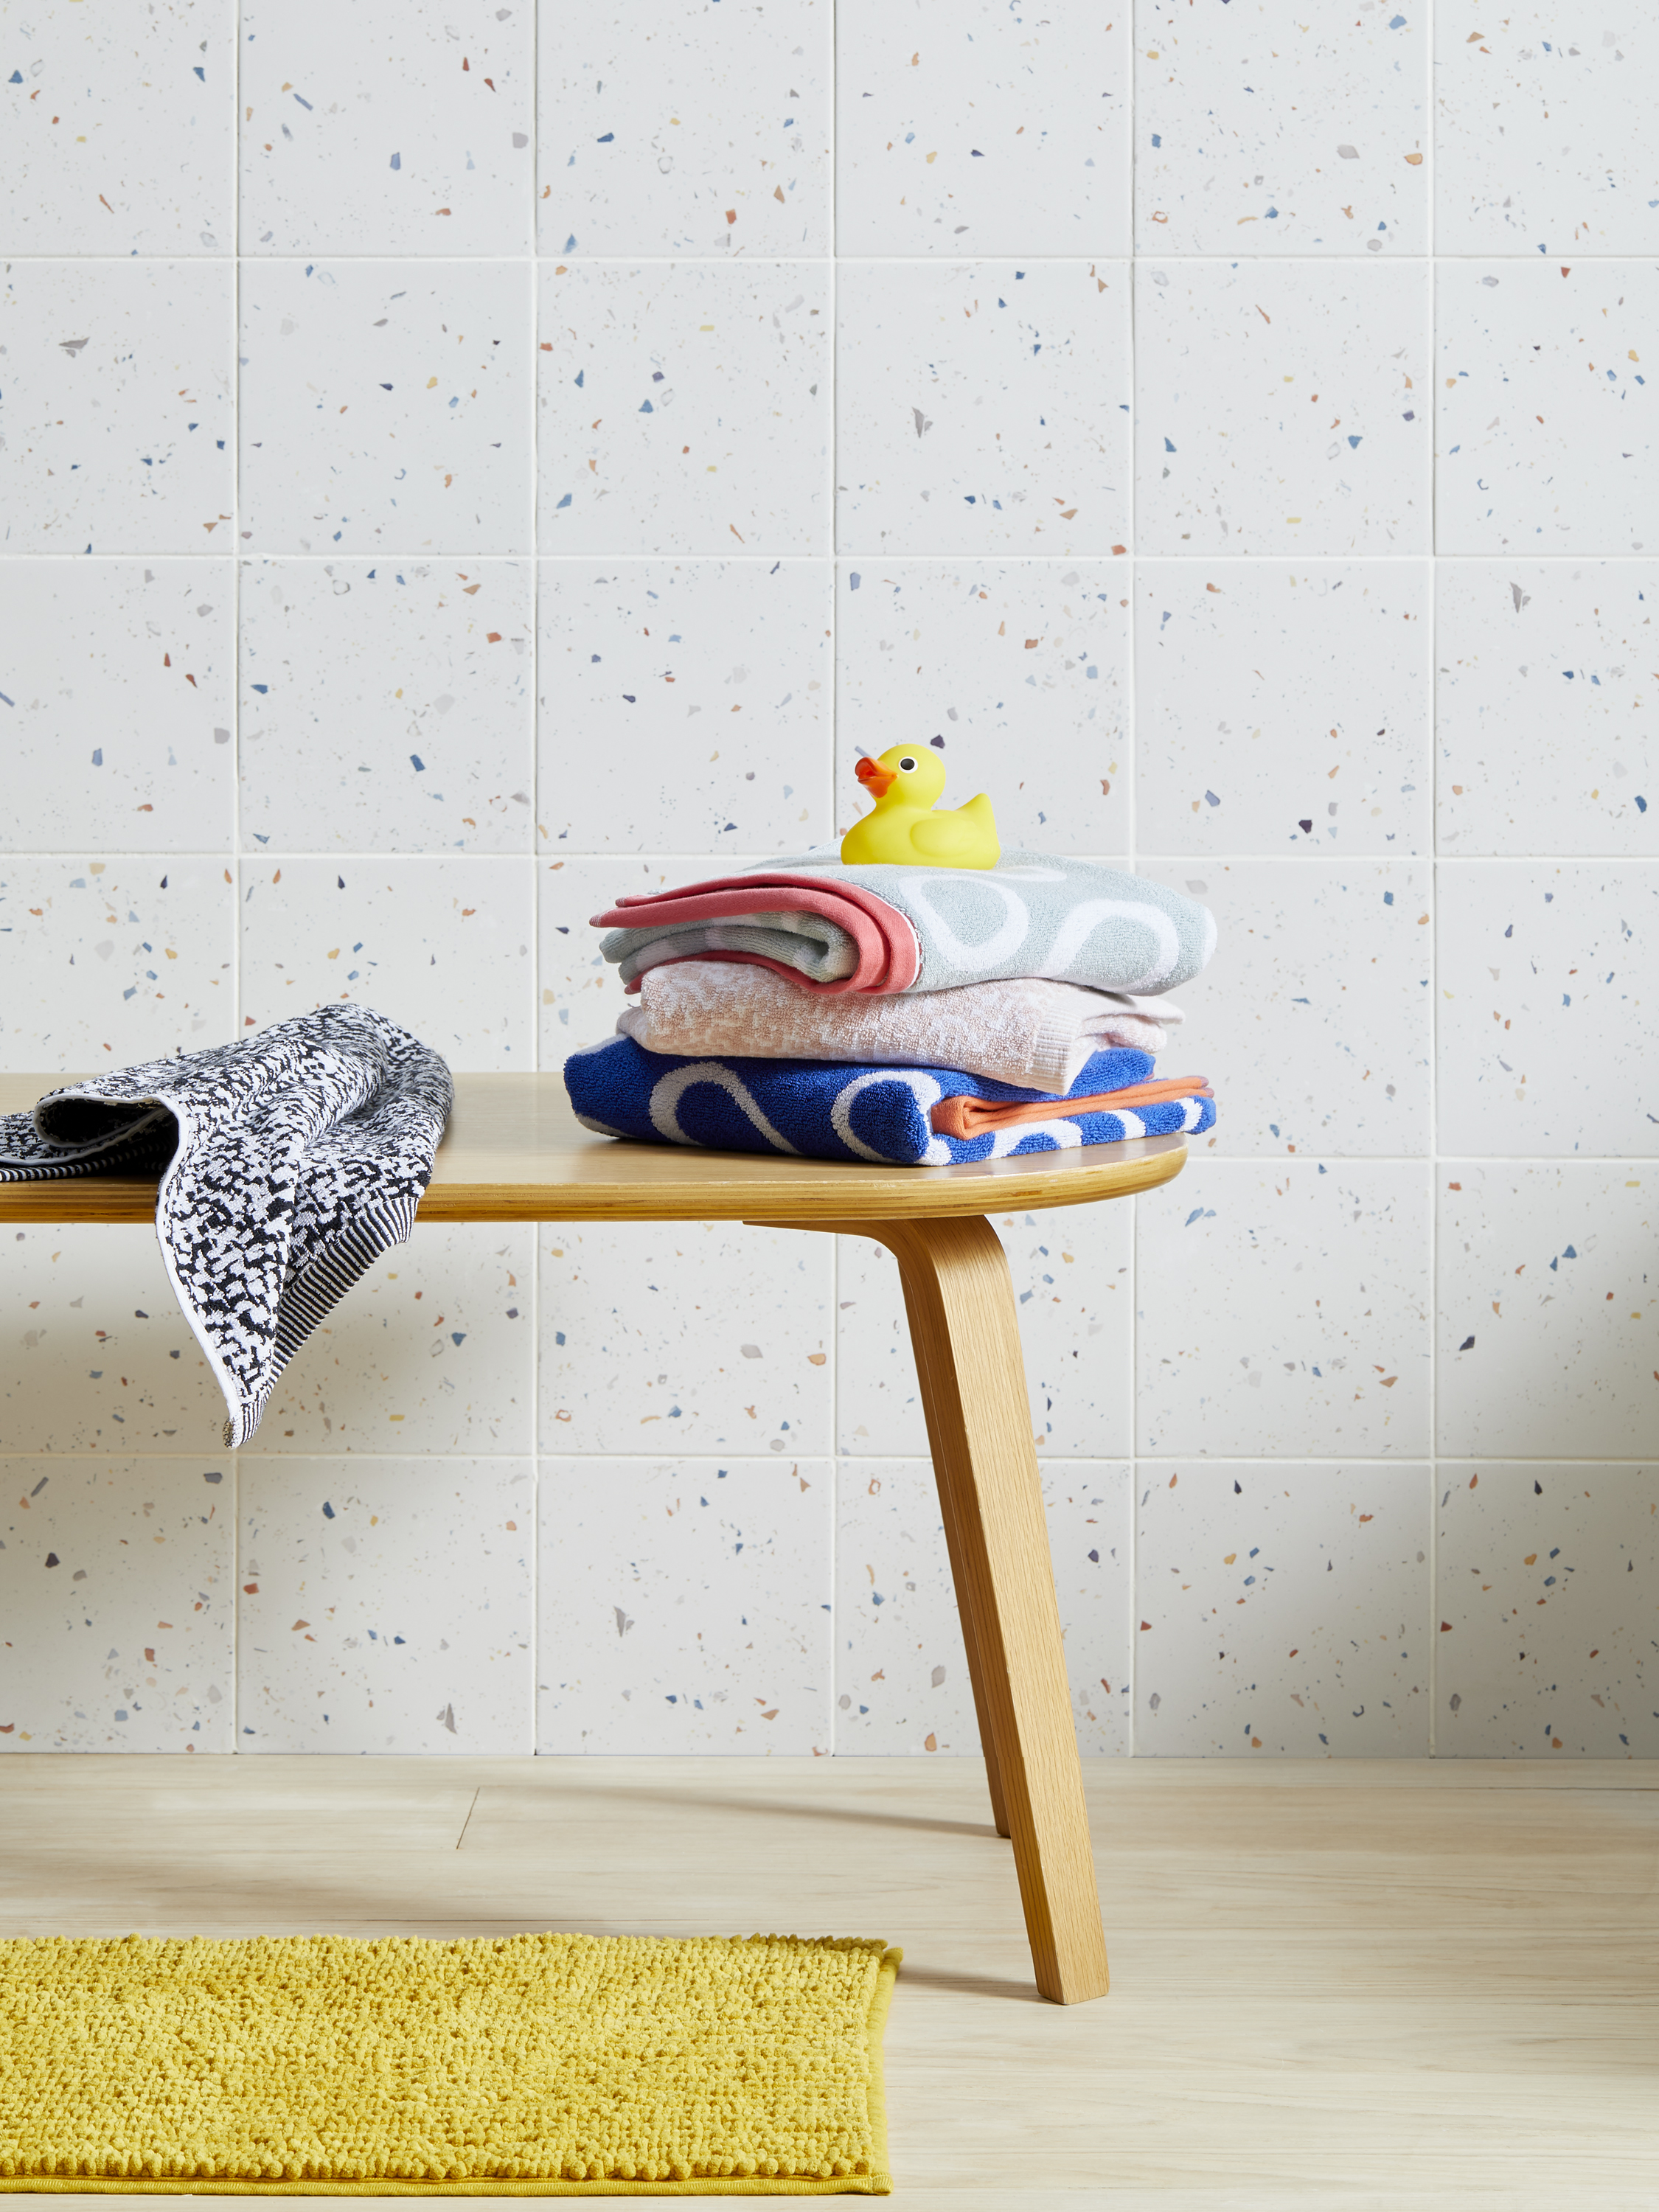 John Lewis Photo Shoot… - Our Colour Drops range of tiles were selected for this John Lewis room set in 2018.